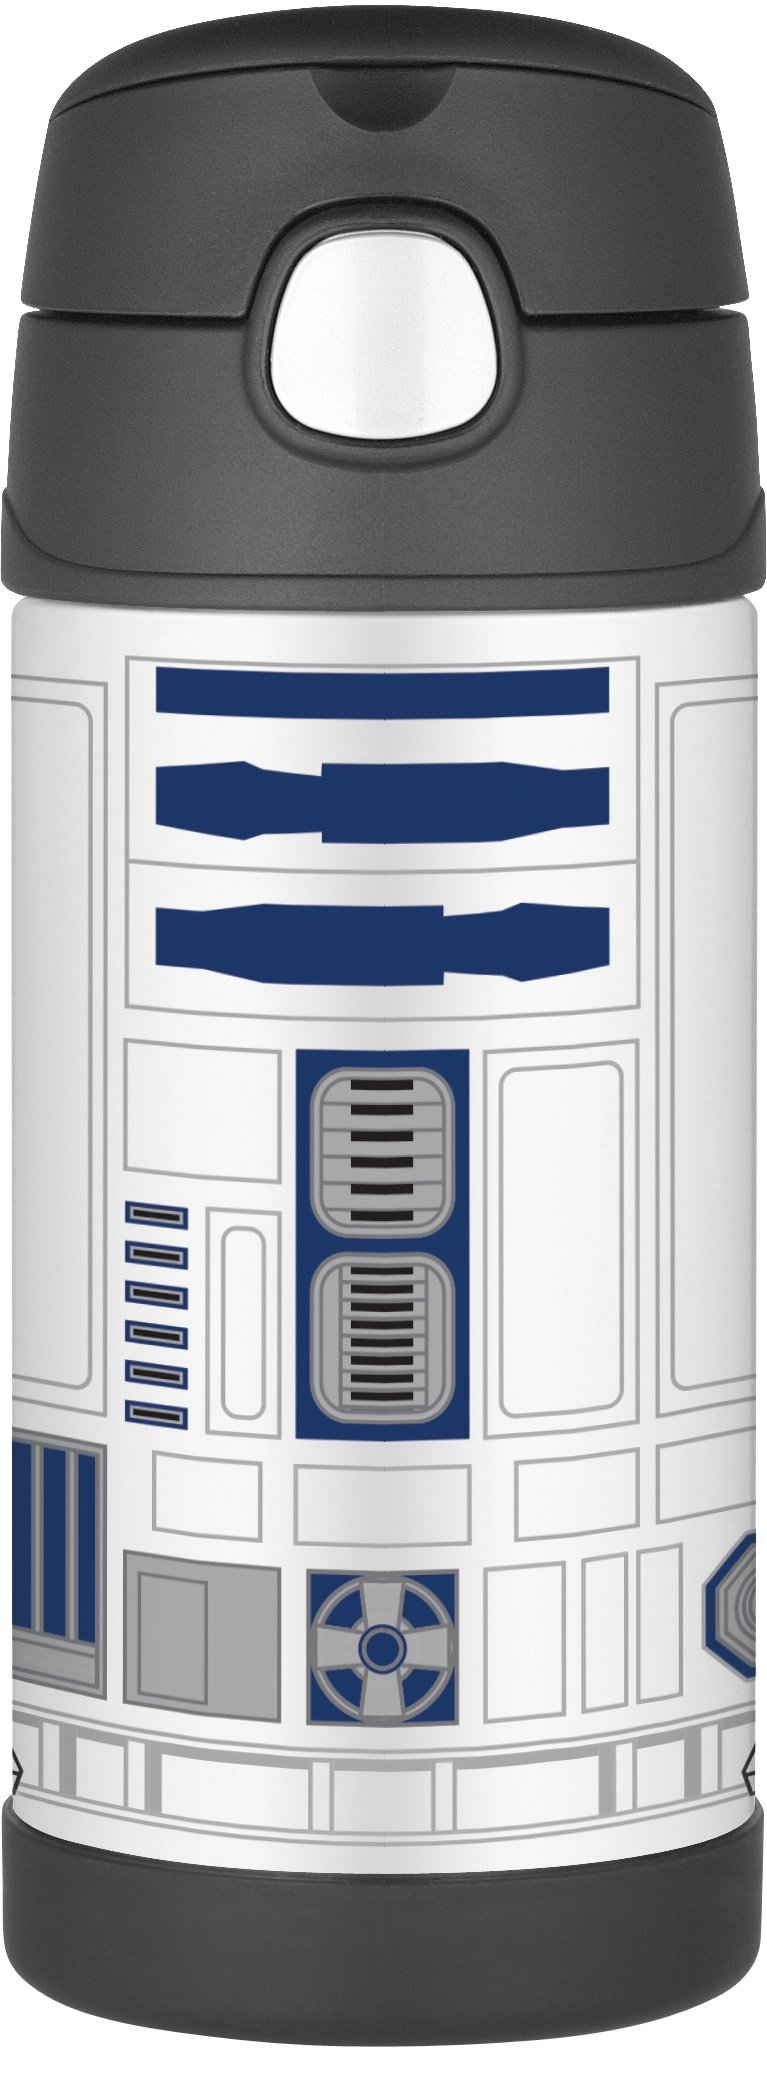 Star Wars R2-D2 Thermos Bottle